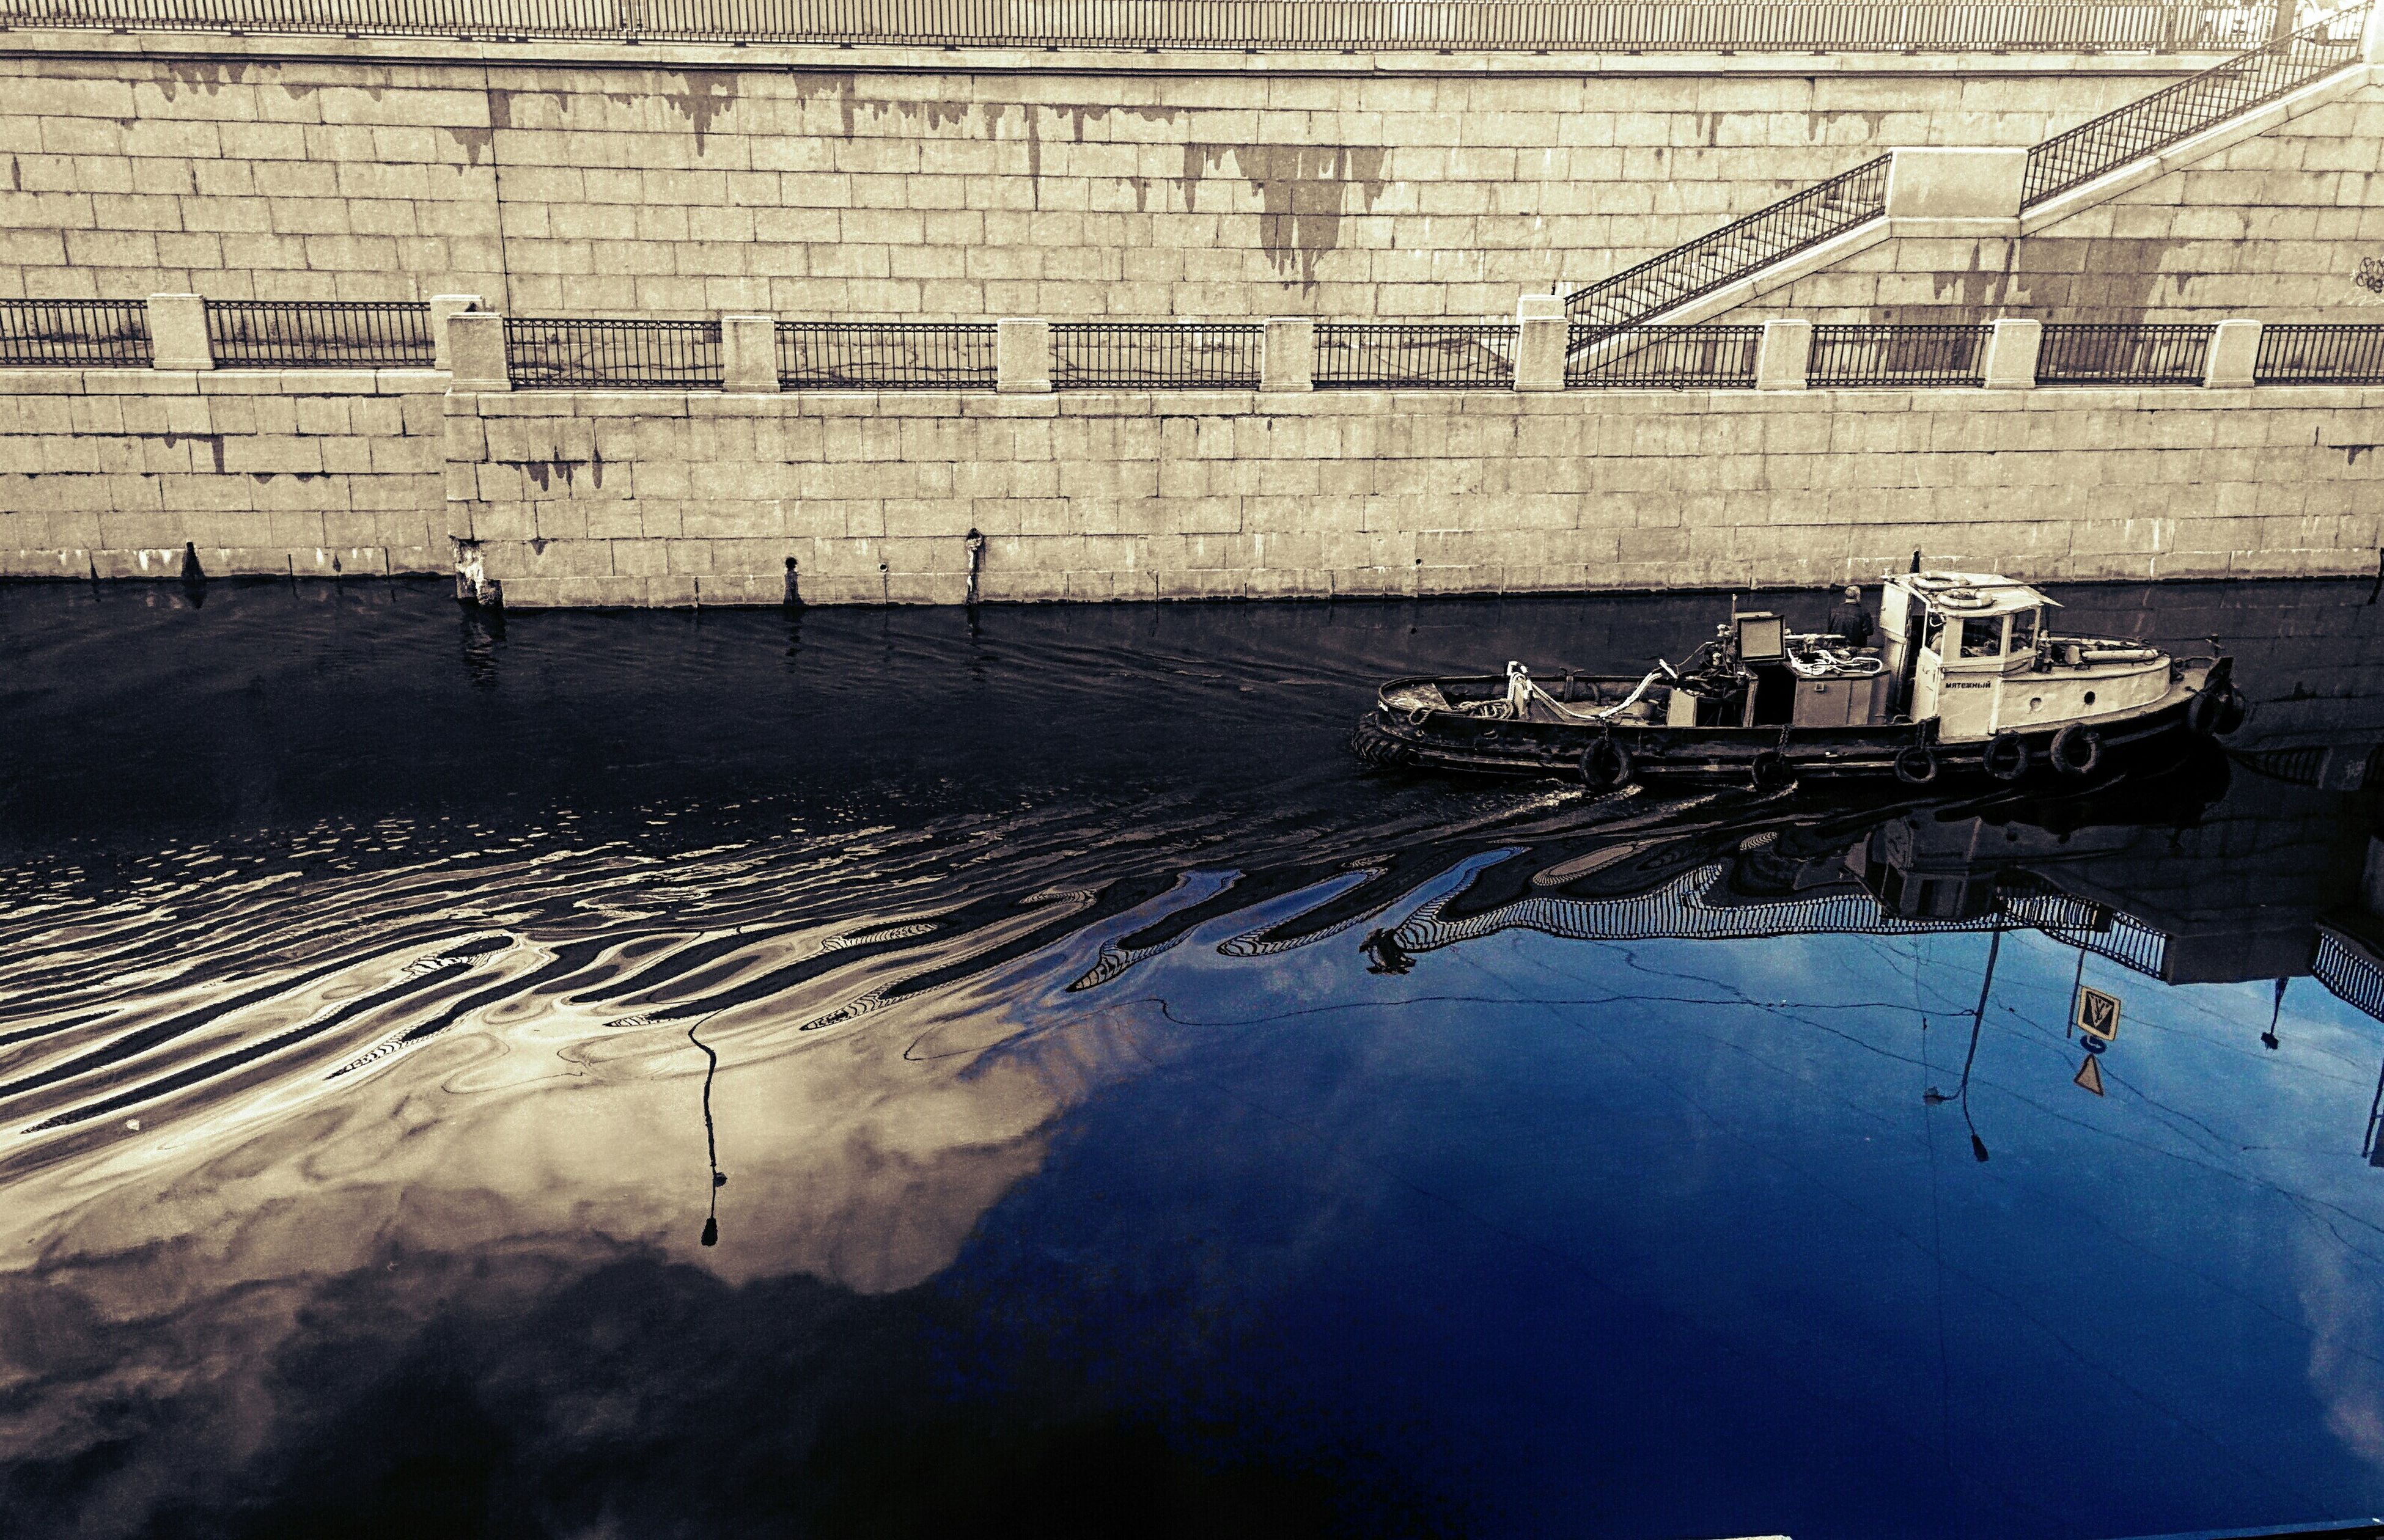 water, text, built structure, architecture, reflection, western script, communication, building exterior, nautical vessel, transportation, outdoors, day, sea, mode of transport, wet, no people, waterfront, wall - building feature, high angle view, boat